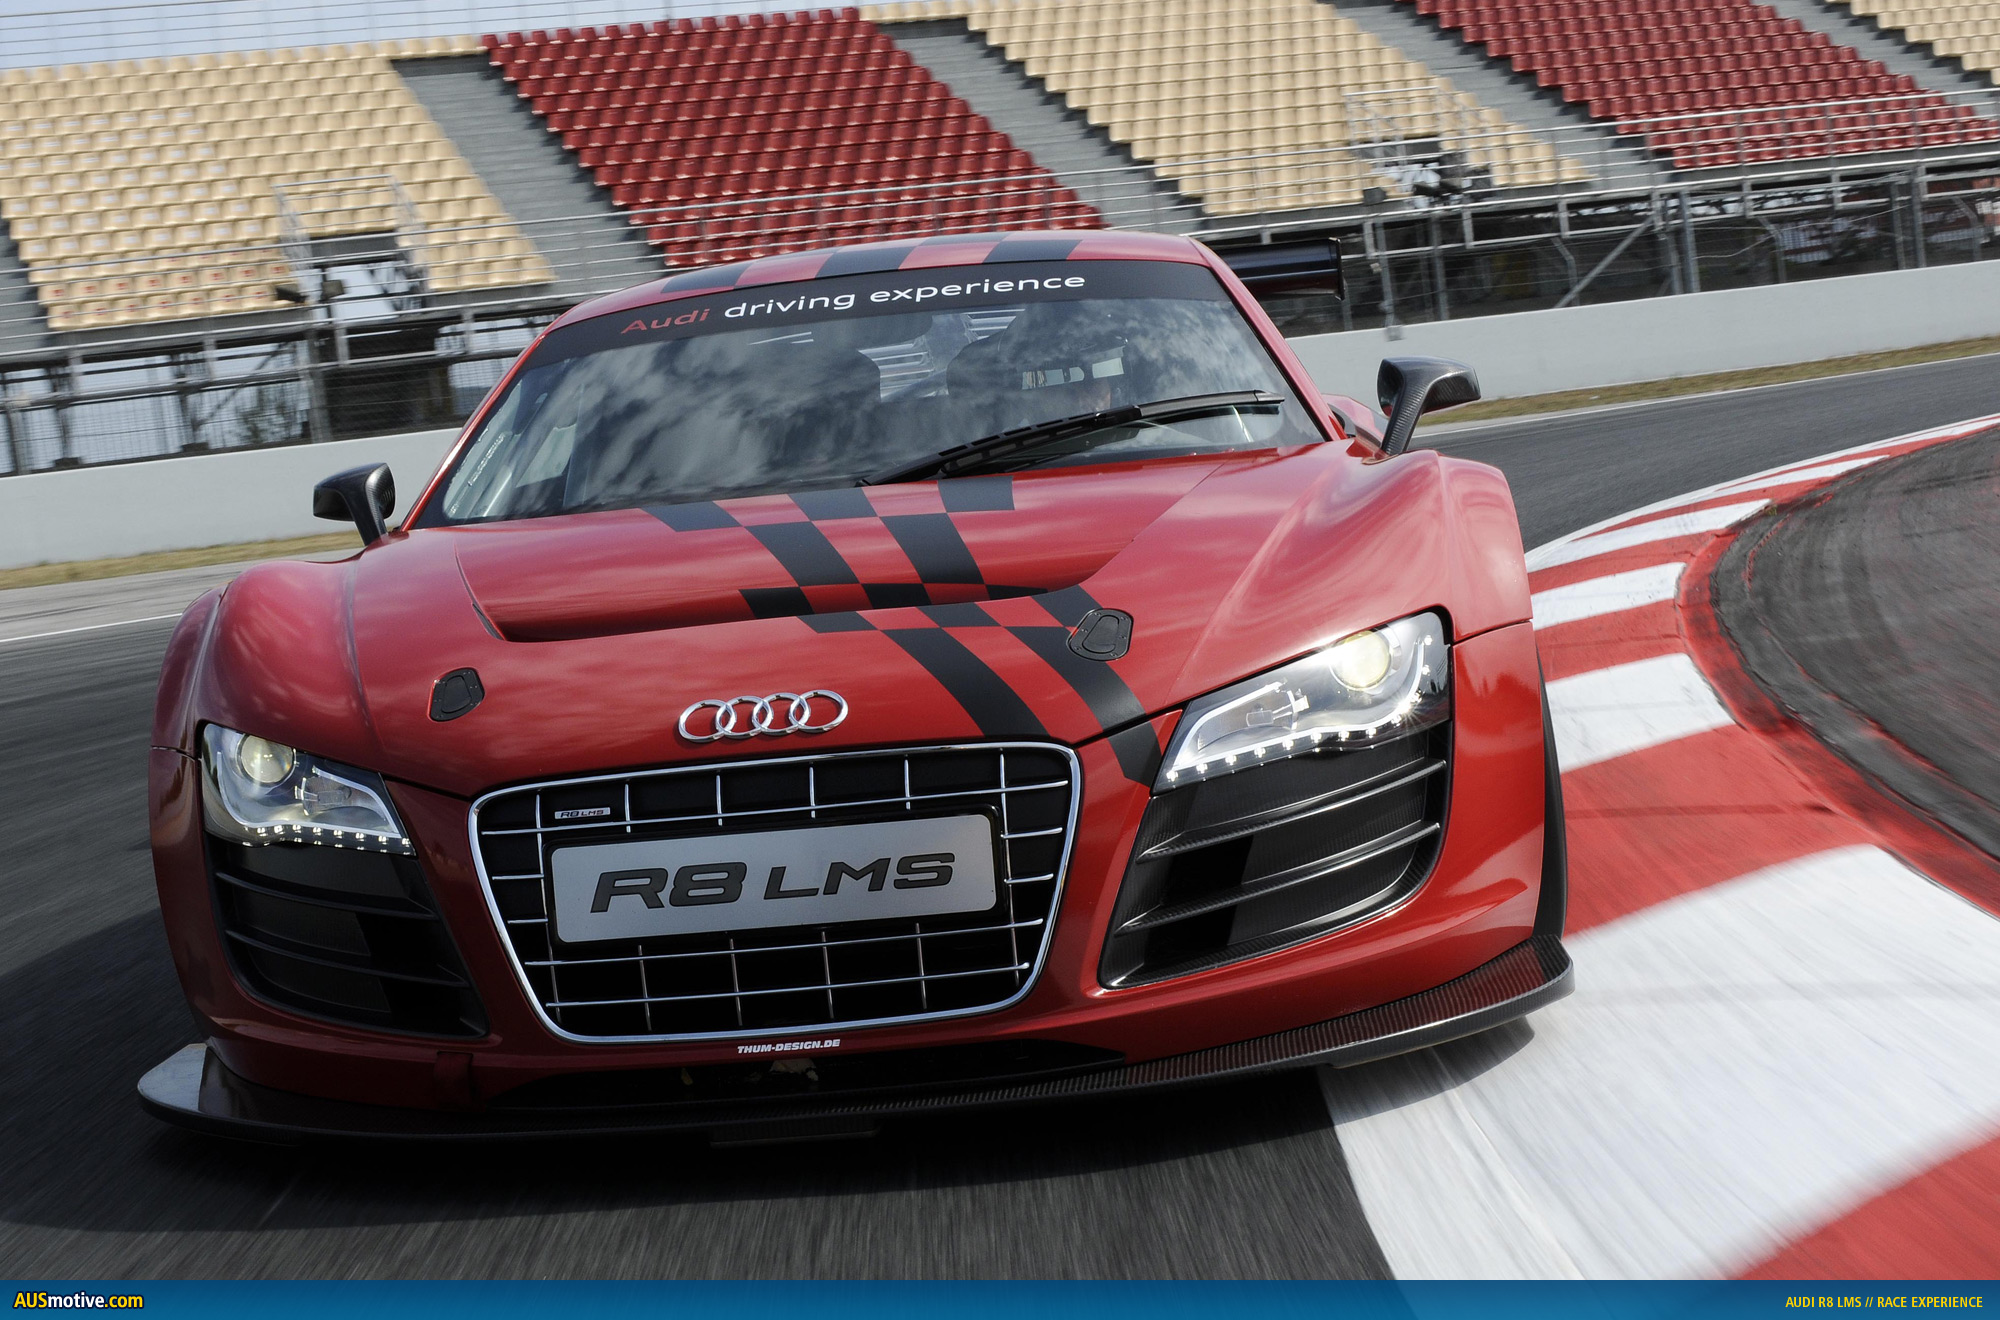 Audi customers can book racing